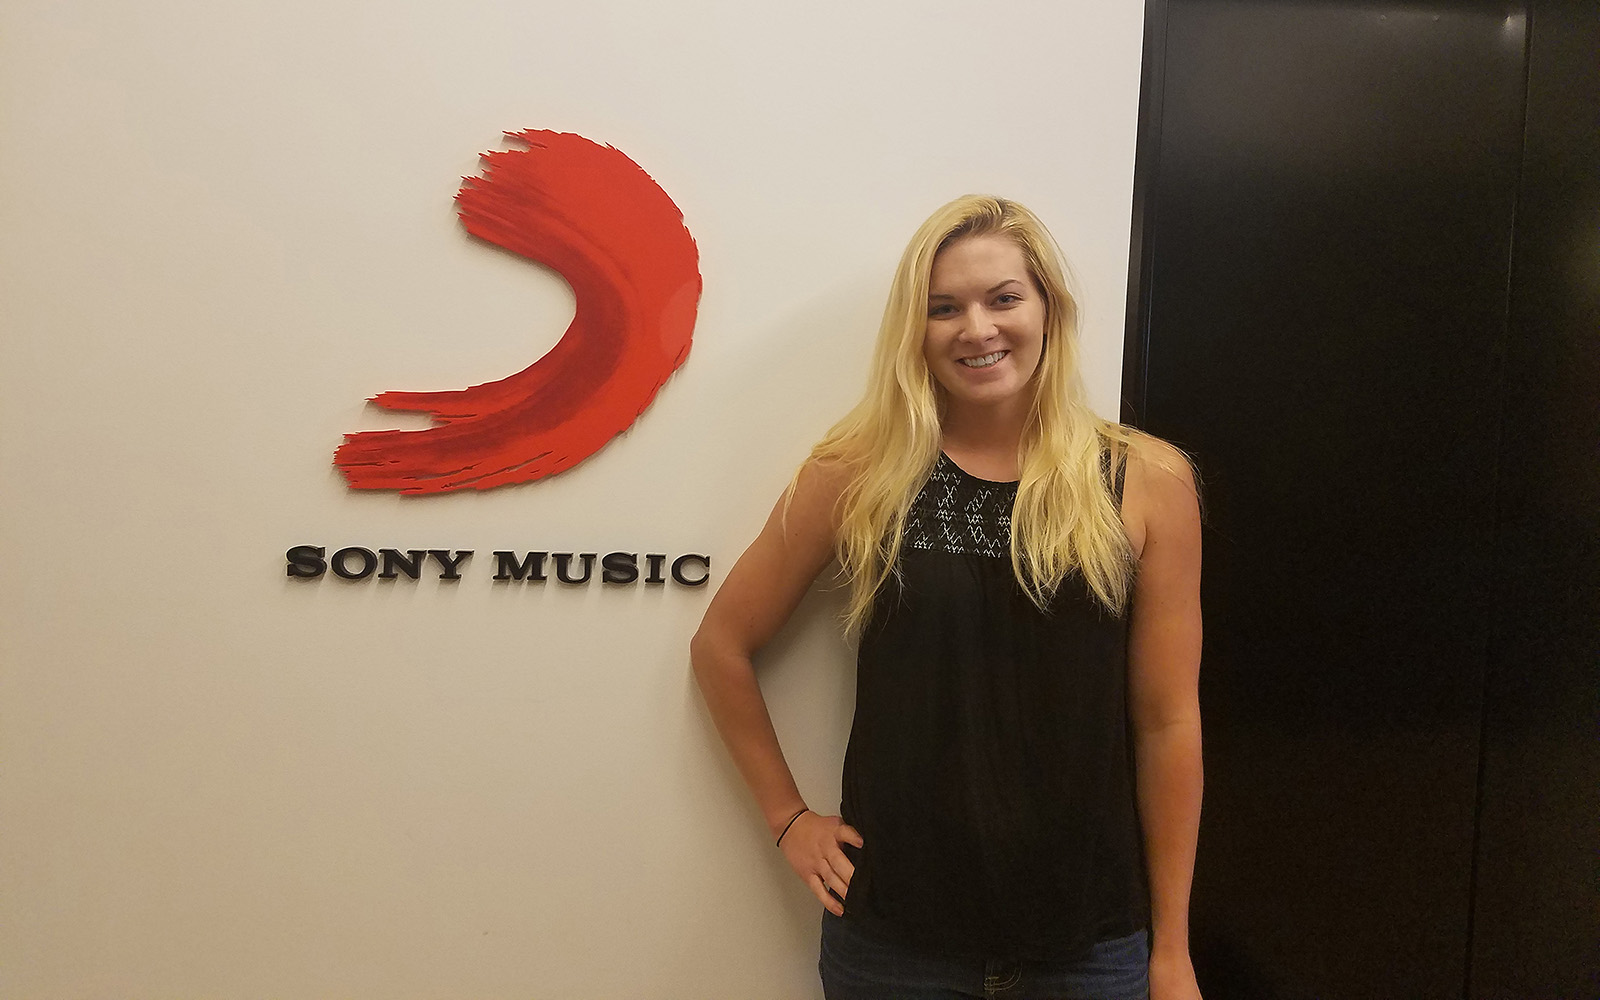 Maggie Quackenbush in the office during her first week at Sony Music. (Maggie Quackenbush)